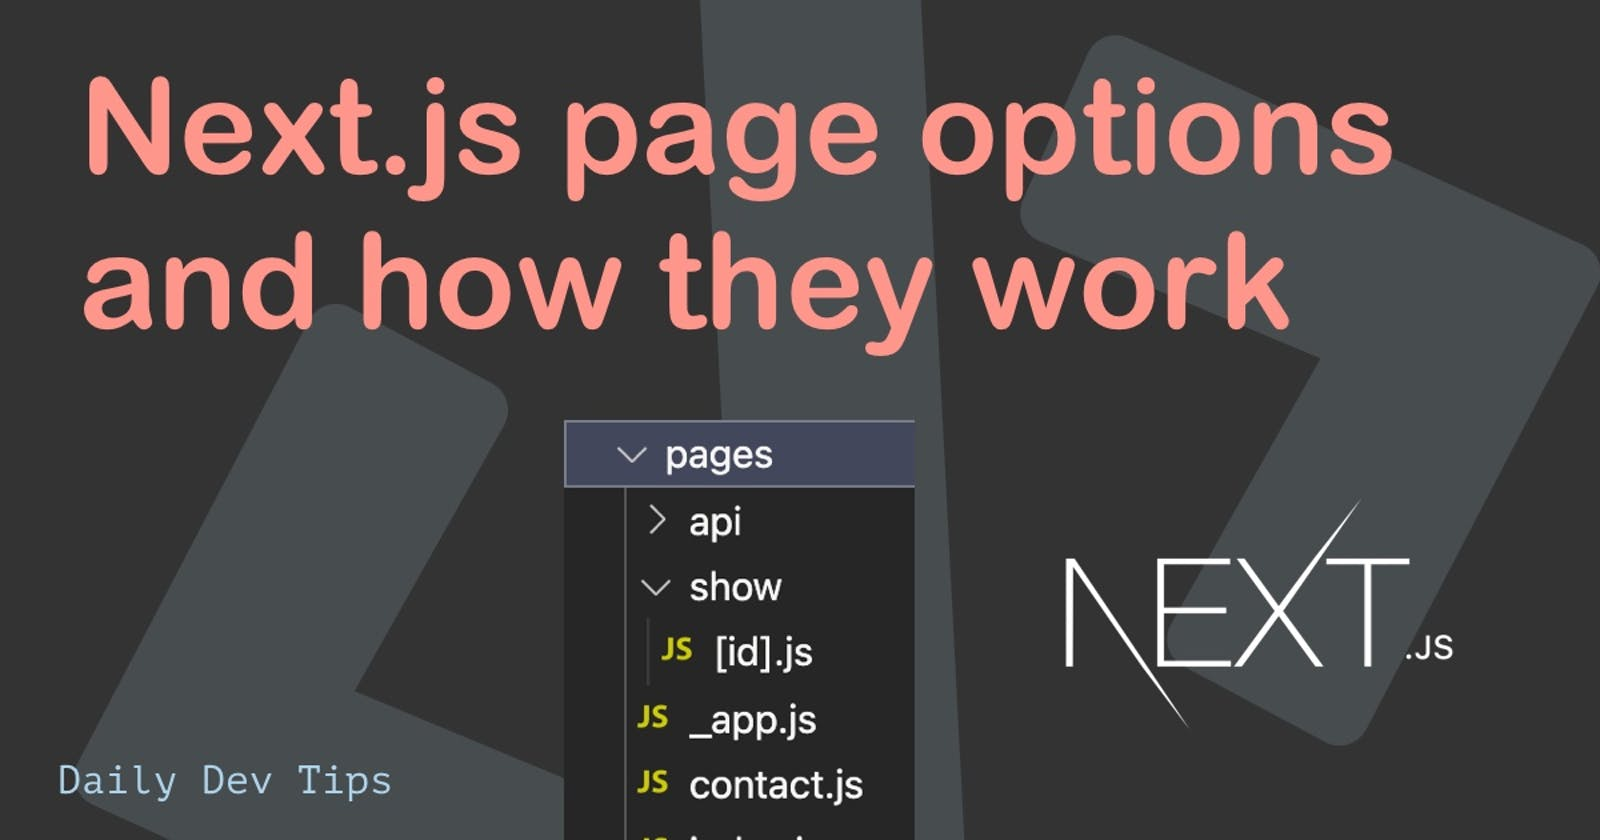 Next.js page options and how they work